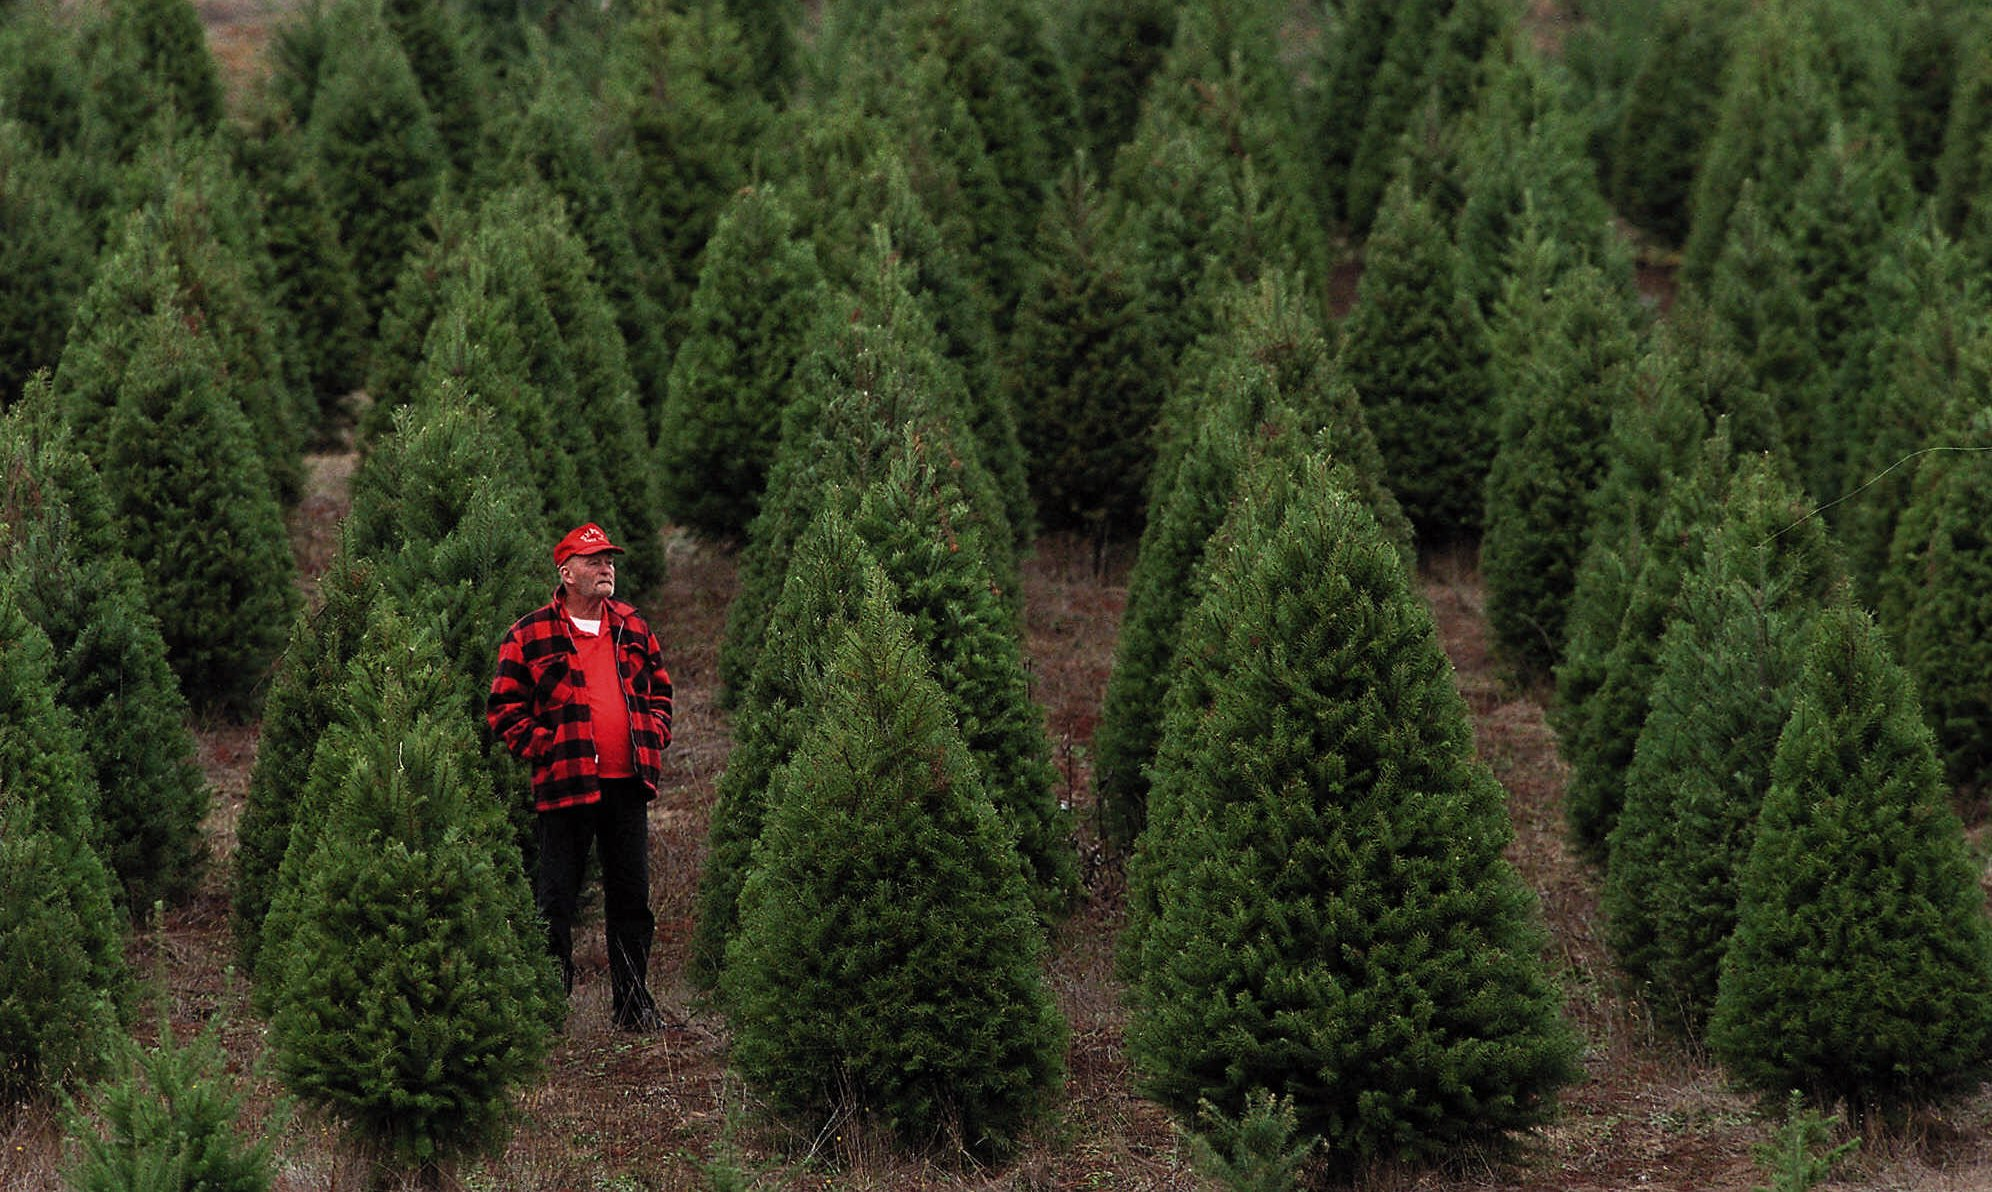 Christmas tree farmers say Mexico acting like Scrooge | The ...